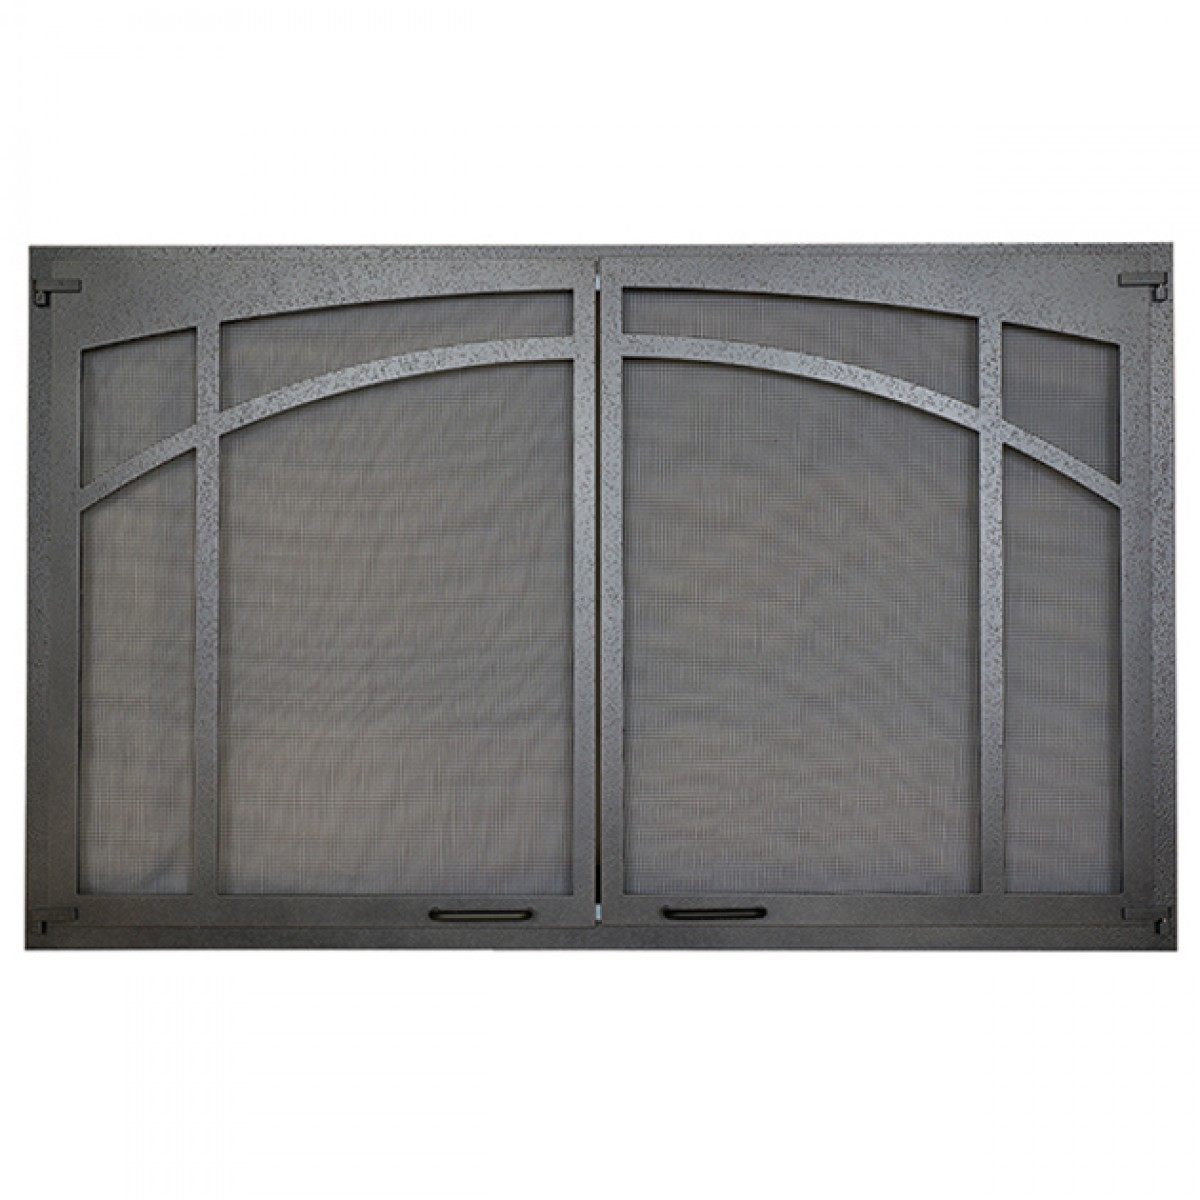 Ihp Superior Asd3628 Ti Arched Screen Door Textured Iron